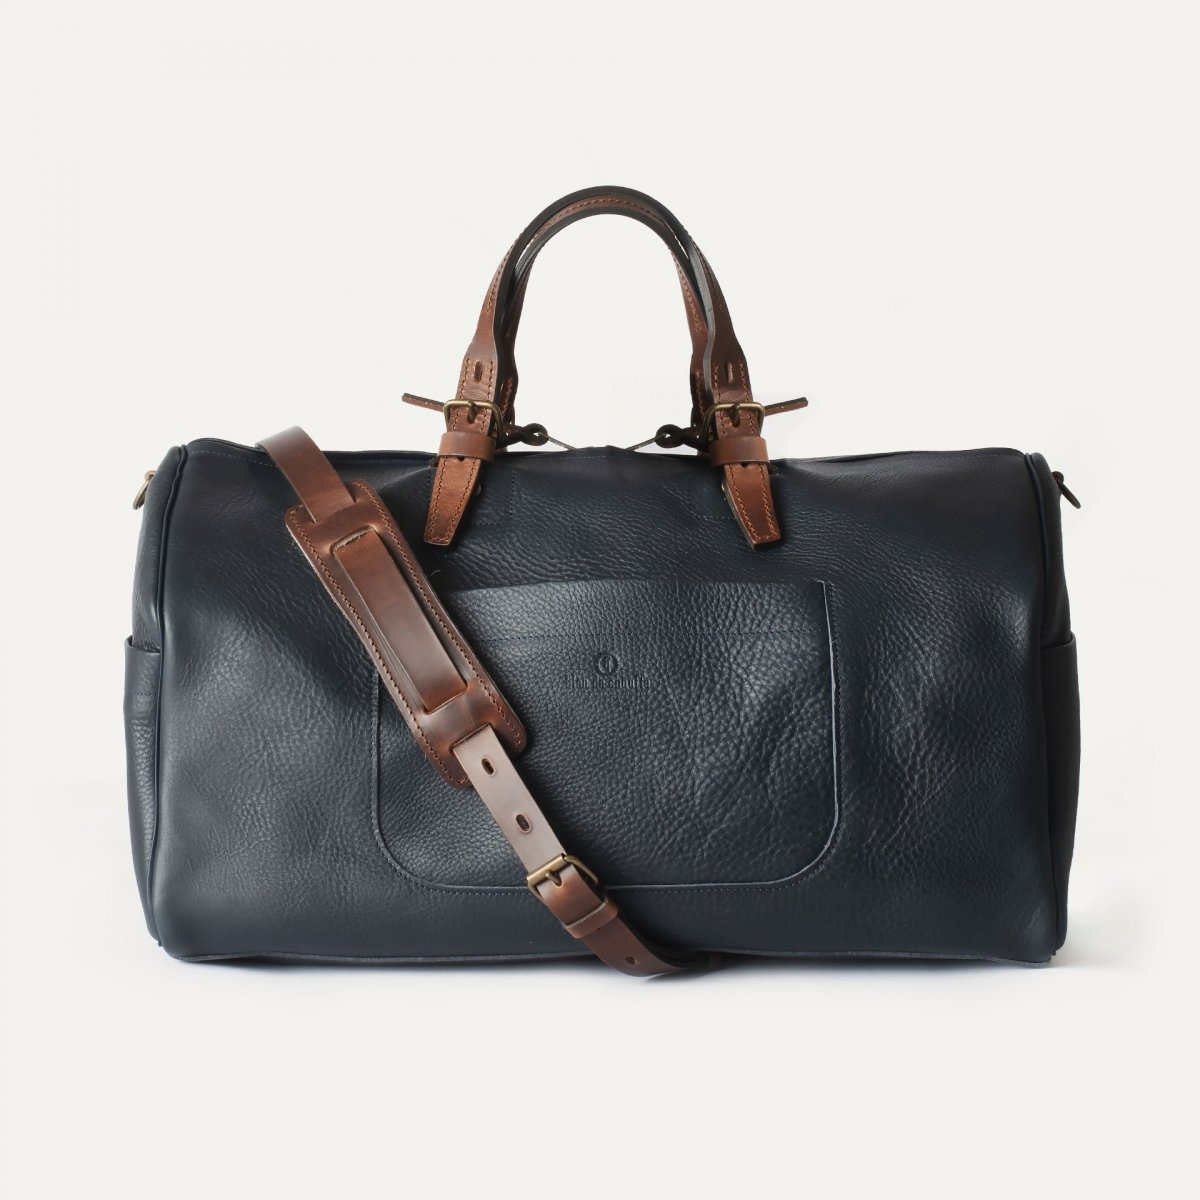 Hobo Travel bag - Navy Blue (image n°1)